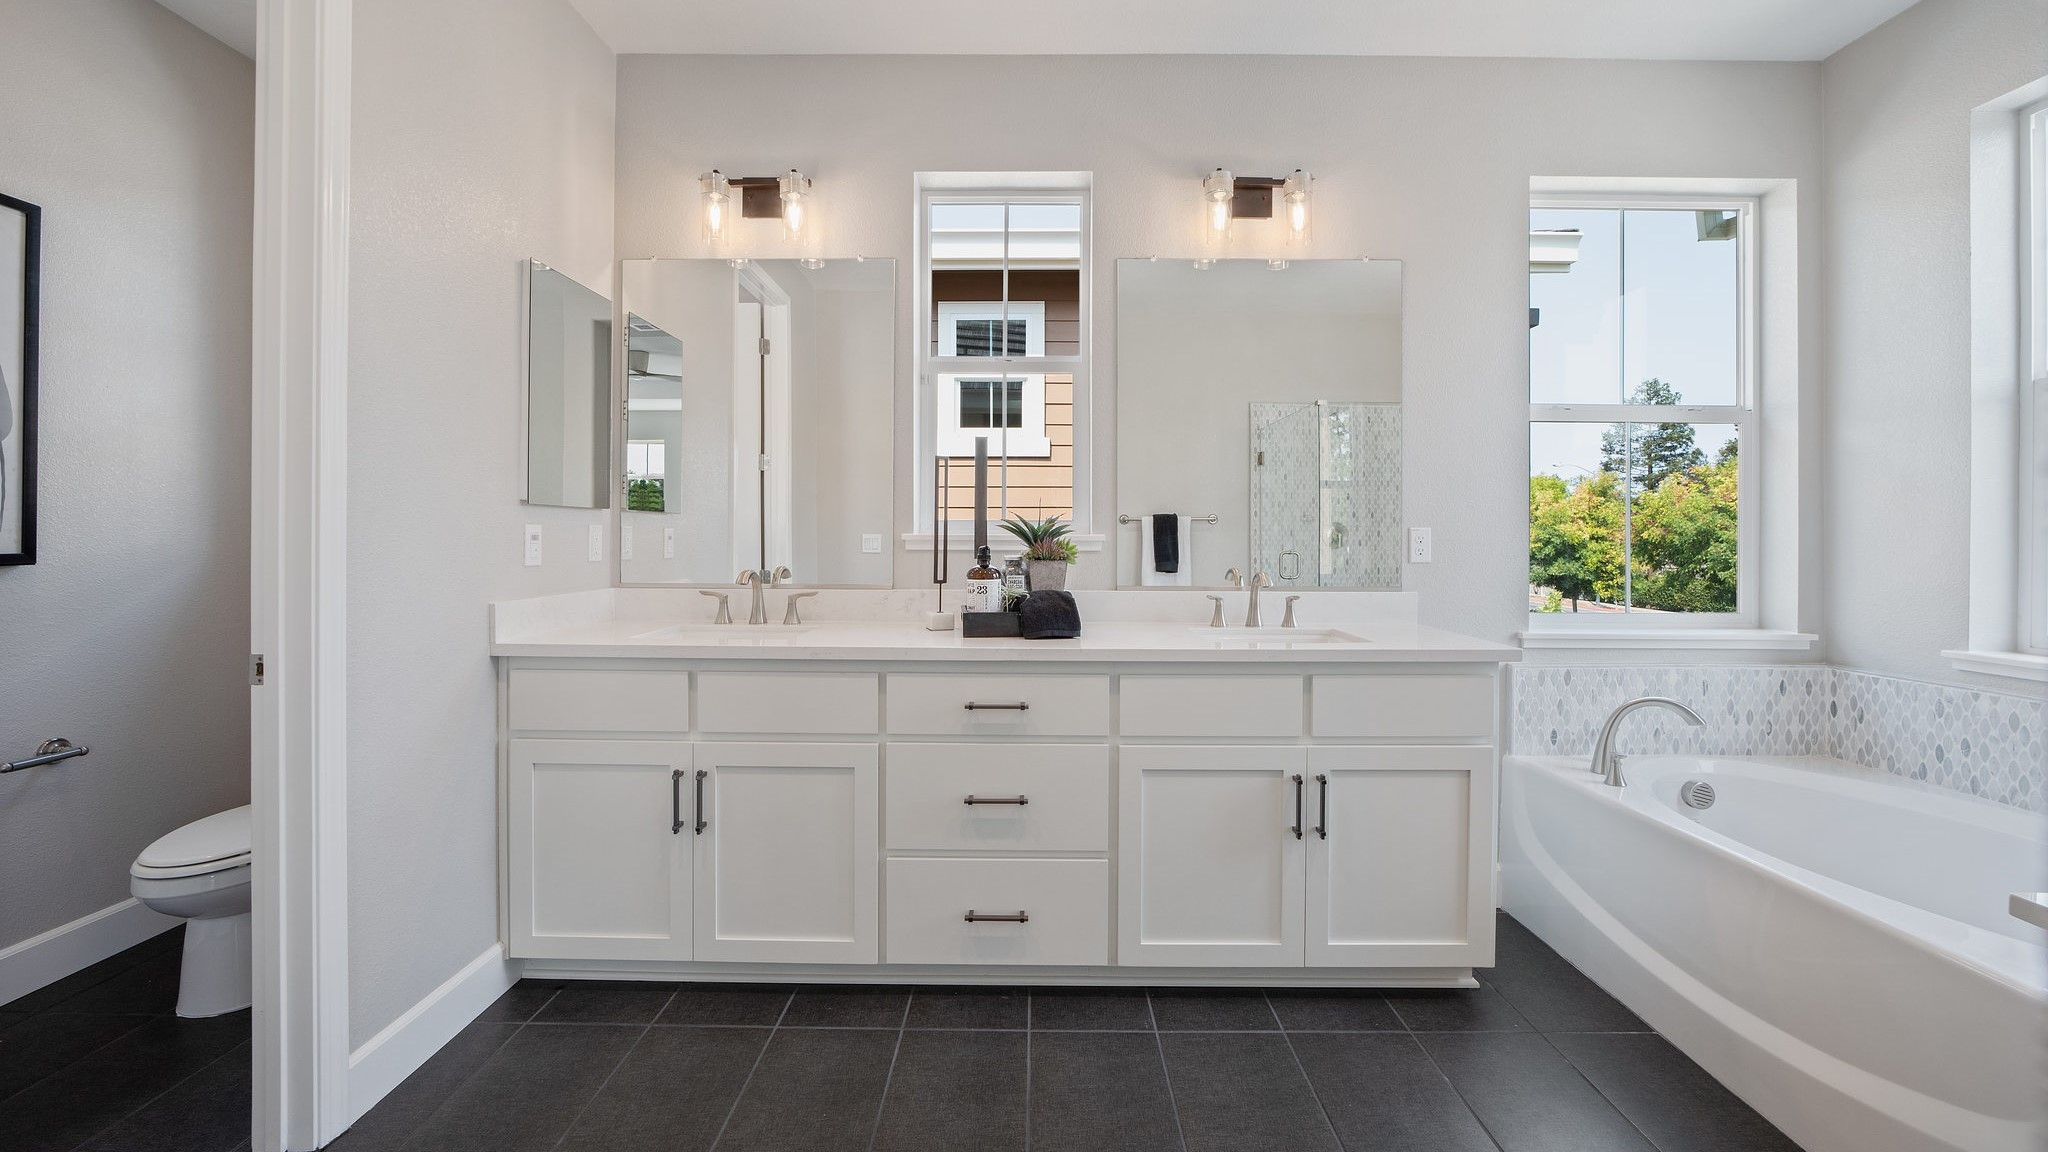 'Vista Heights' by Discovery Homes in Oakland-Alameda